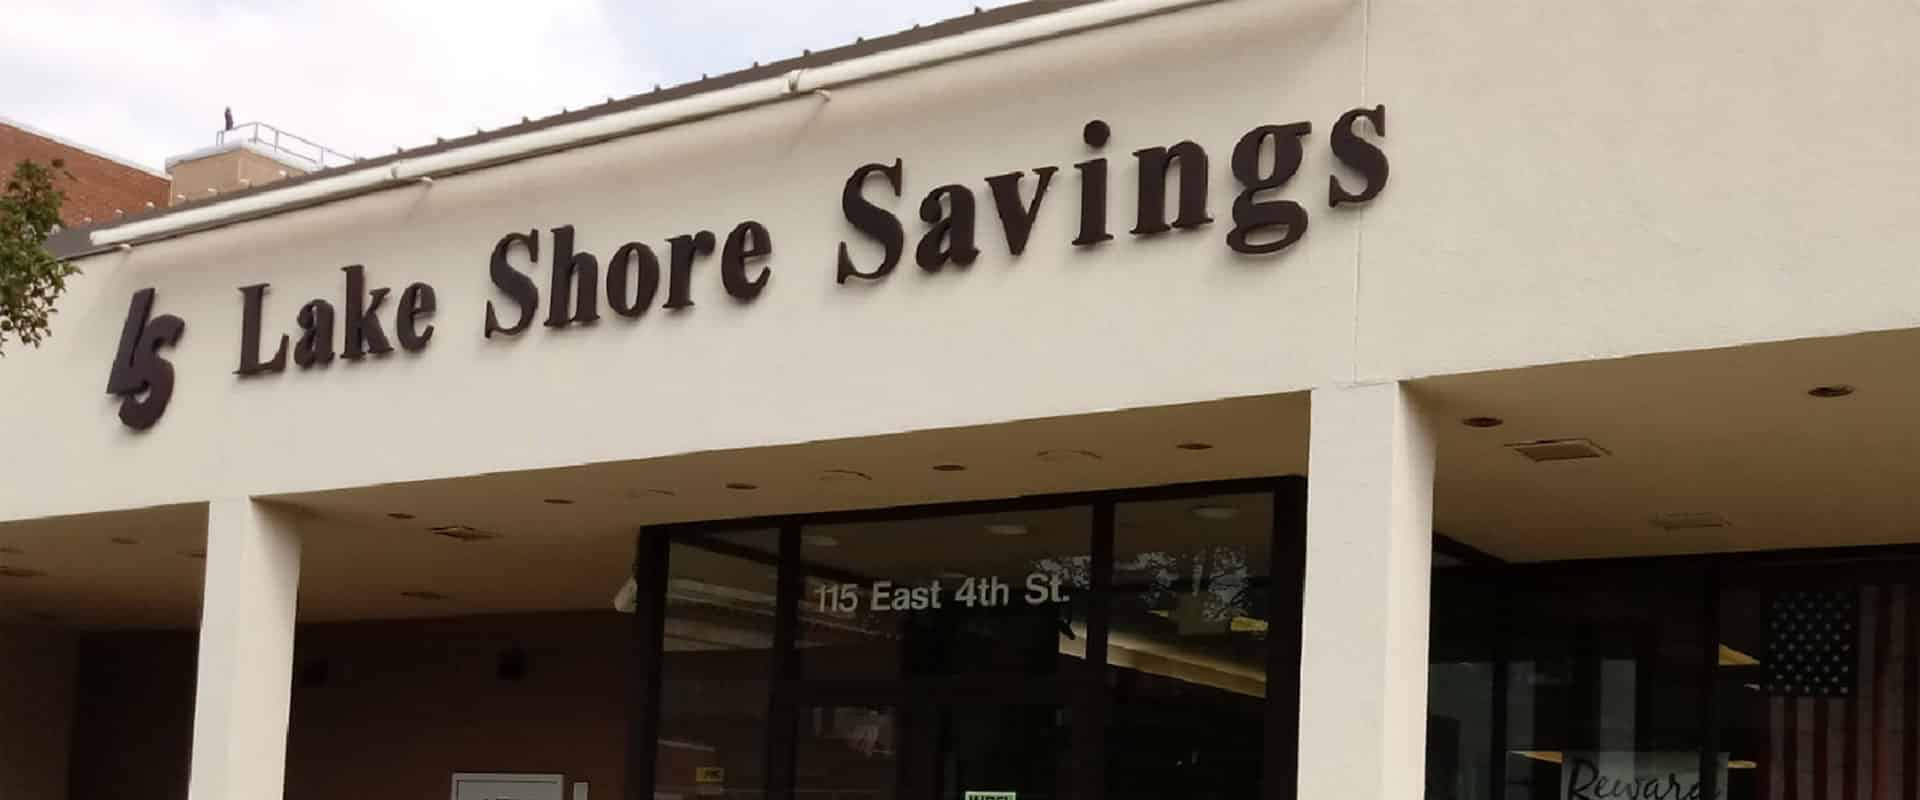 Jamestown Lake Shore Savings Bank Location